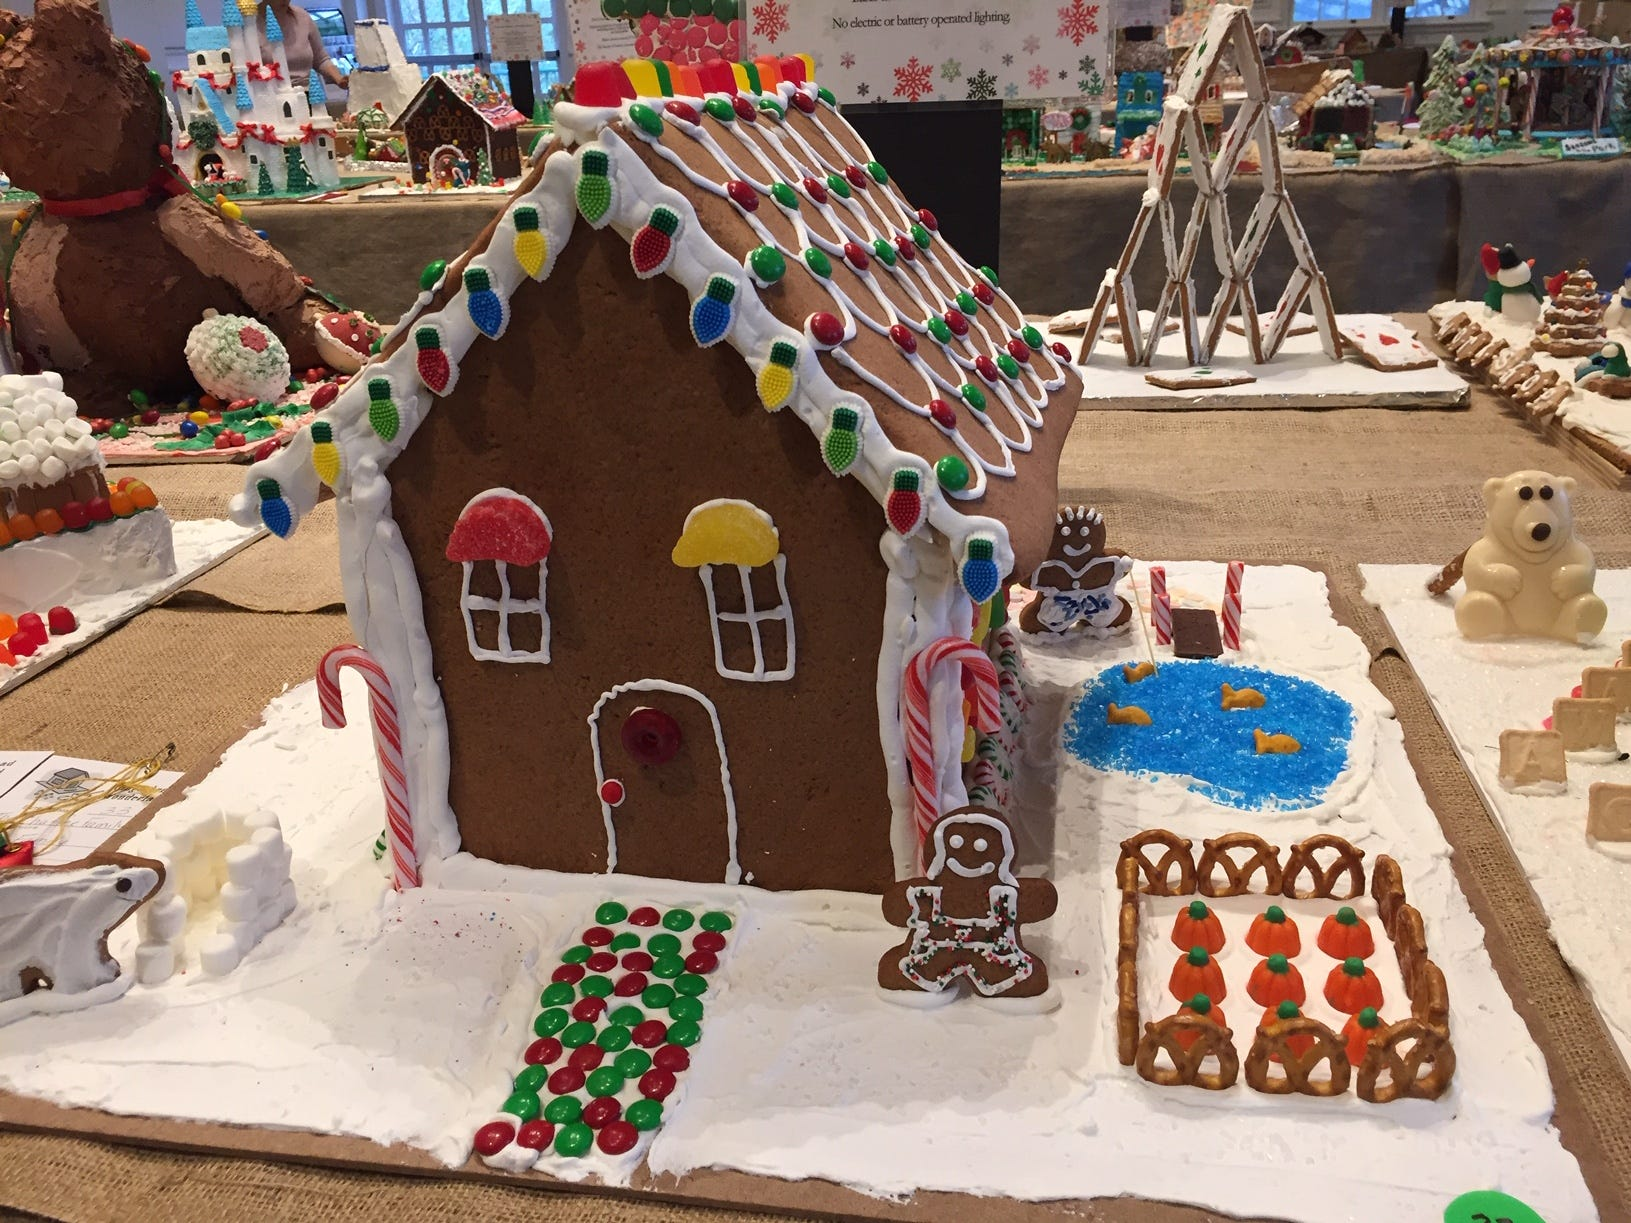 """A Cozy Cottage"" by the Chaffee Family of Parsippany at the 2018 Gingerbread Wonderland at the Frelinghuysen Arboretum. Family category."